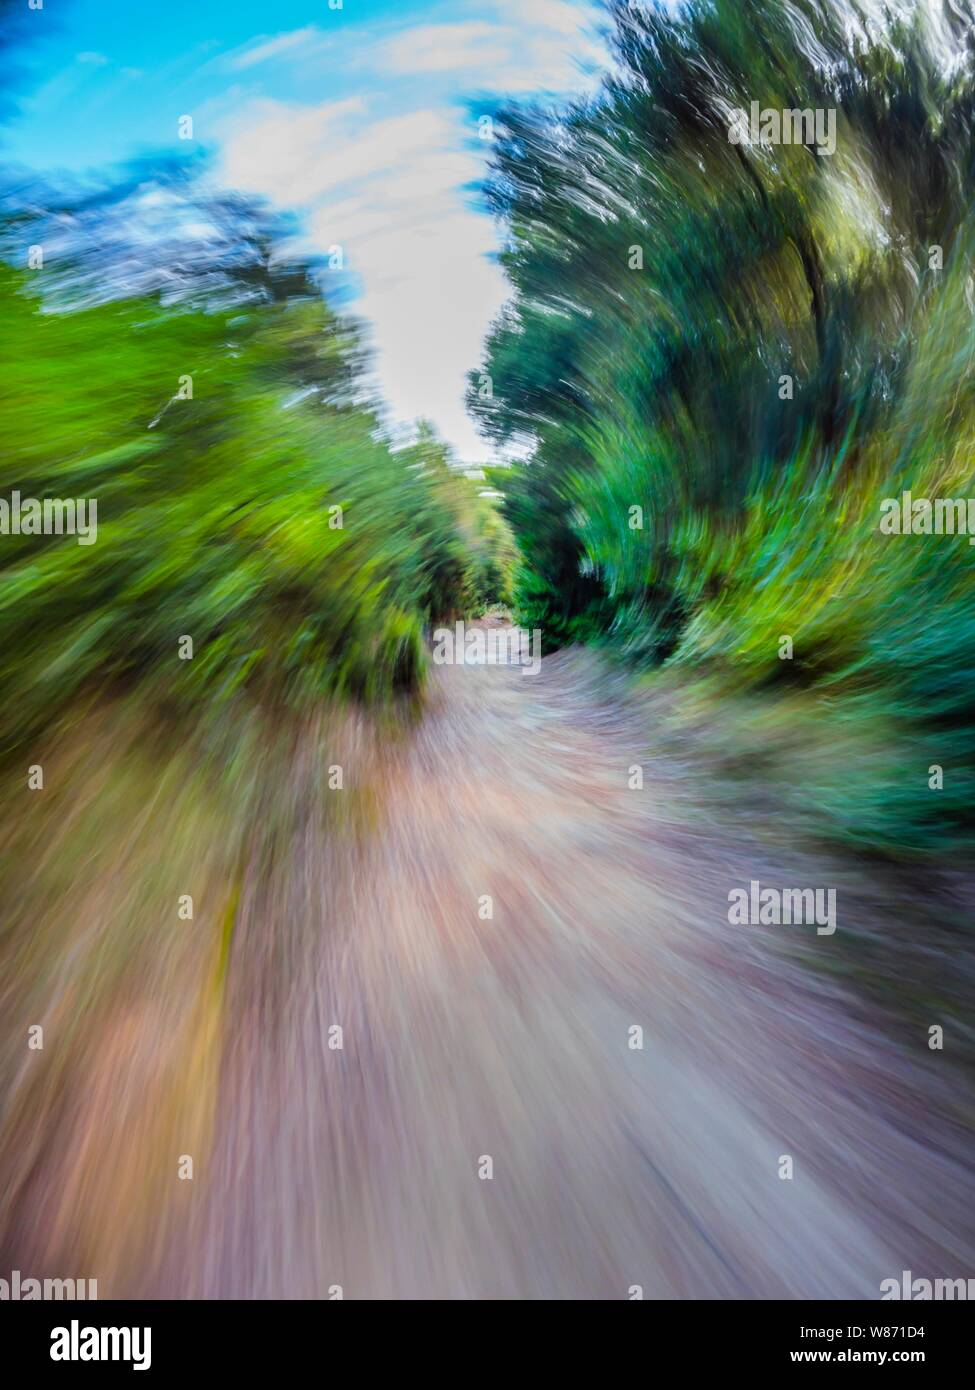 Green forest countryside path pathway speeding through dense trees dizzy circular twirl motion Stock Photo